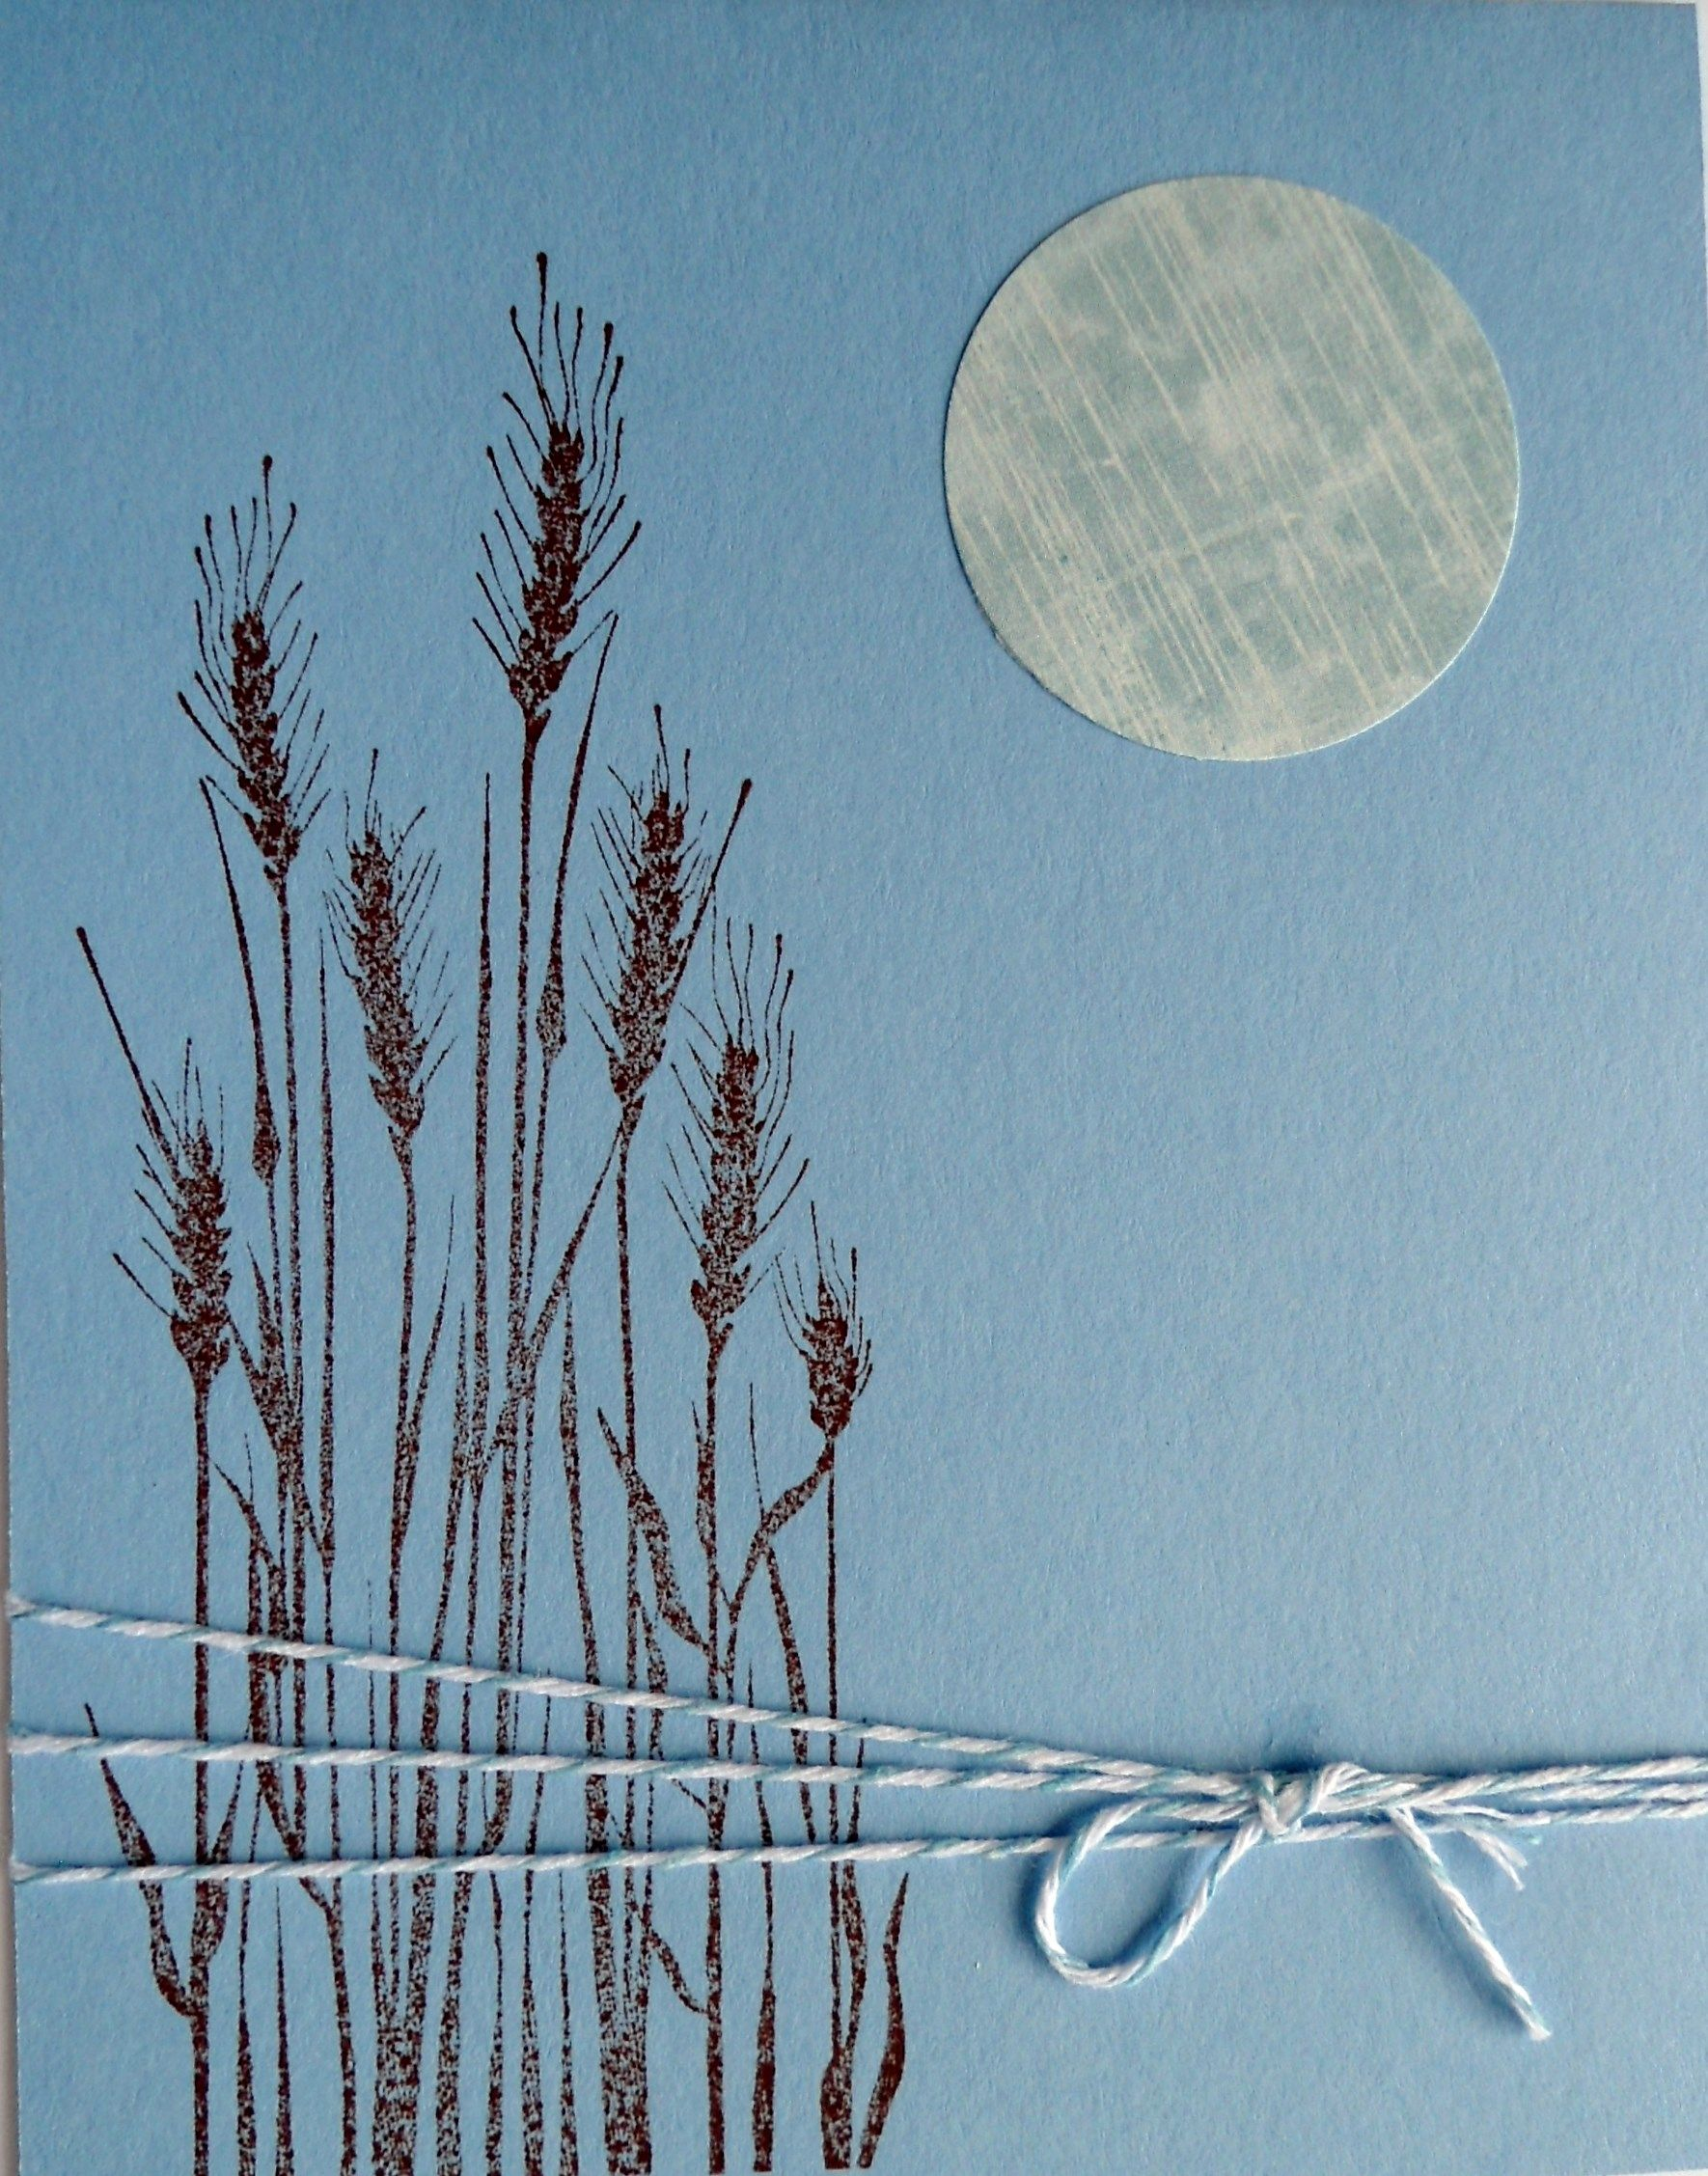 This card was not difficult to make - I stamped the grasses and tied a string around them, then added a moon...